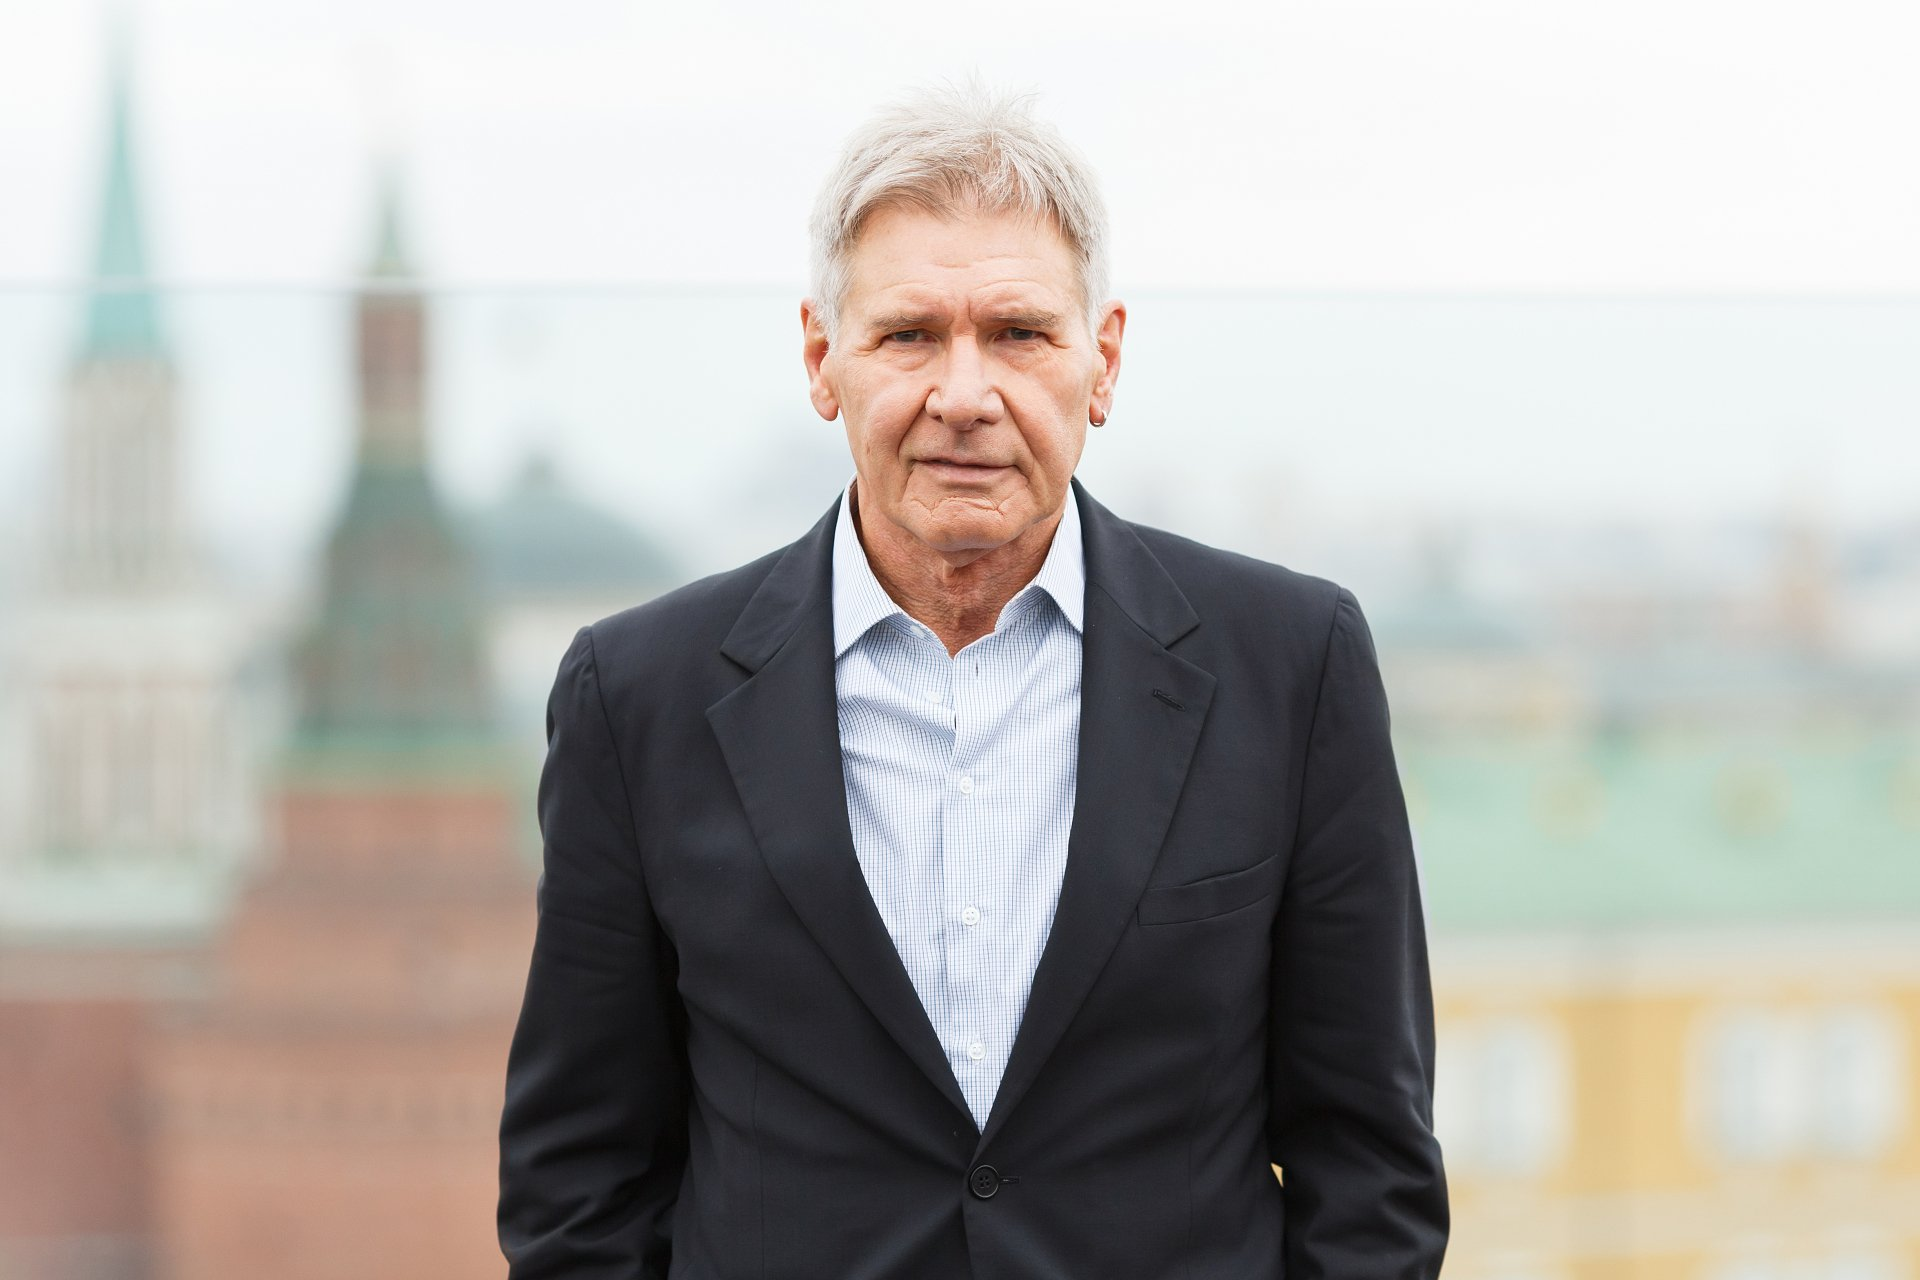 harrison ford 4k ultra hd wallpaper and background image | 4705x3137